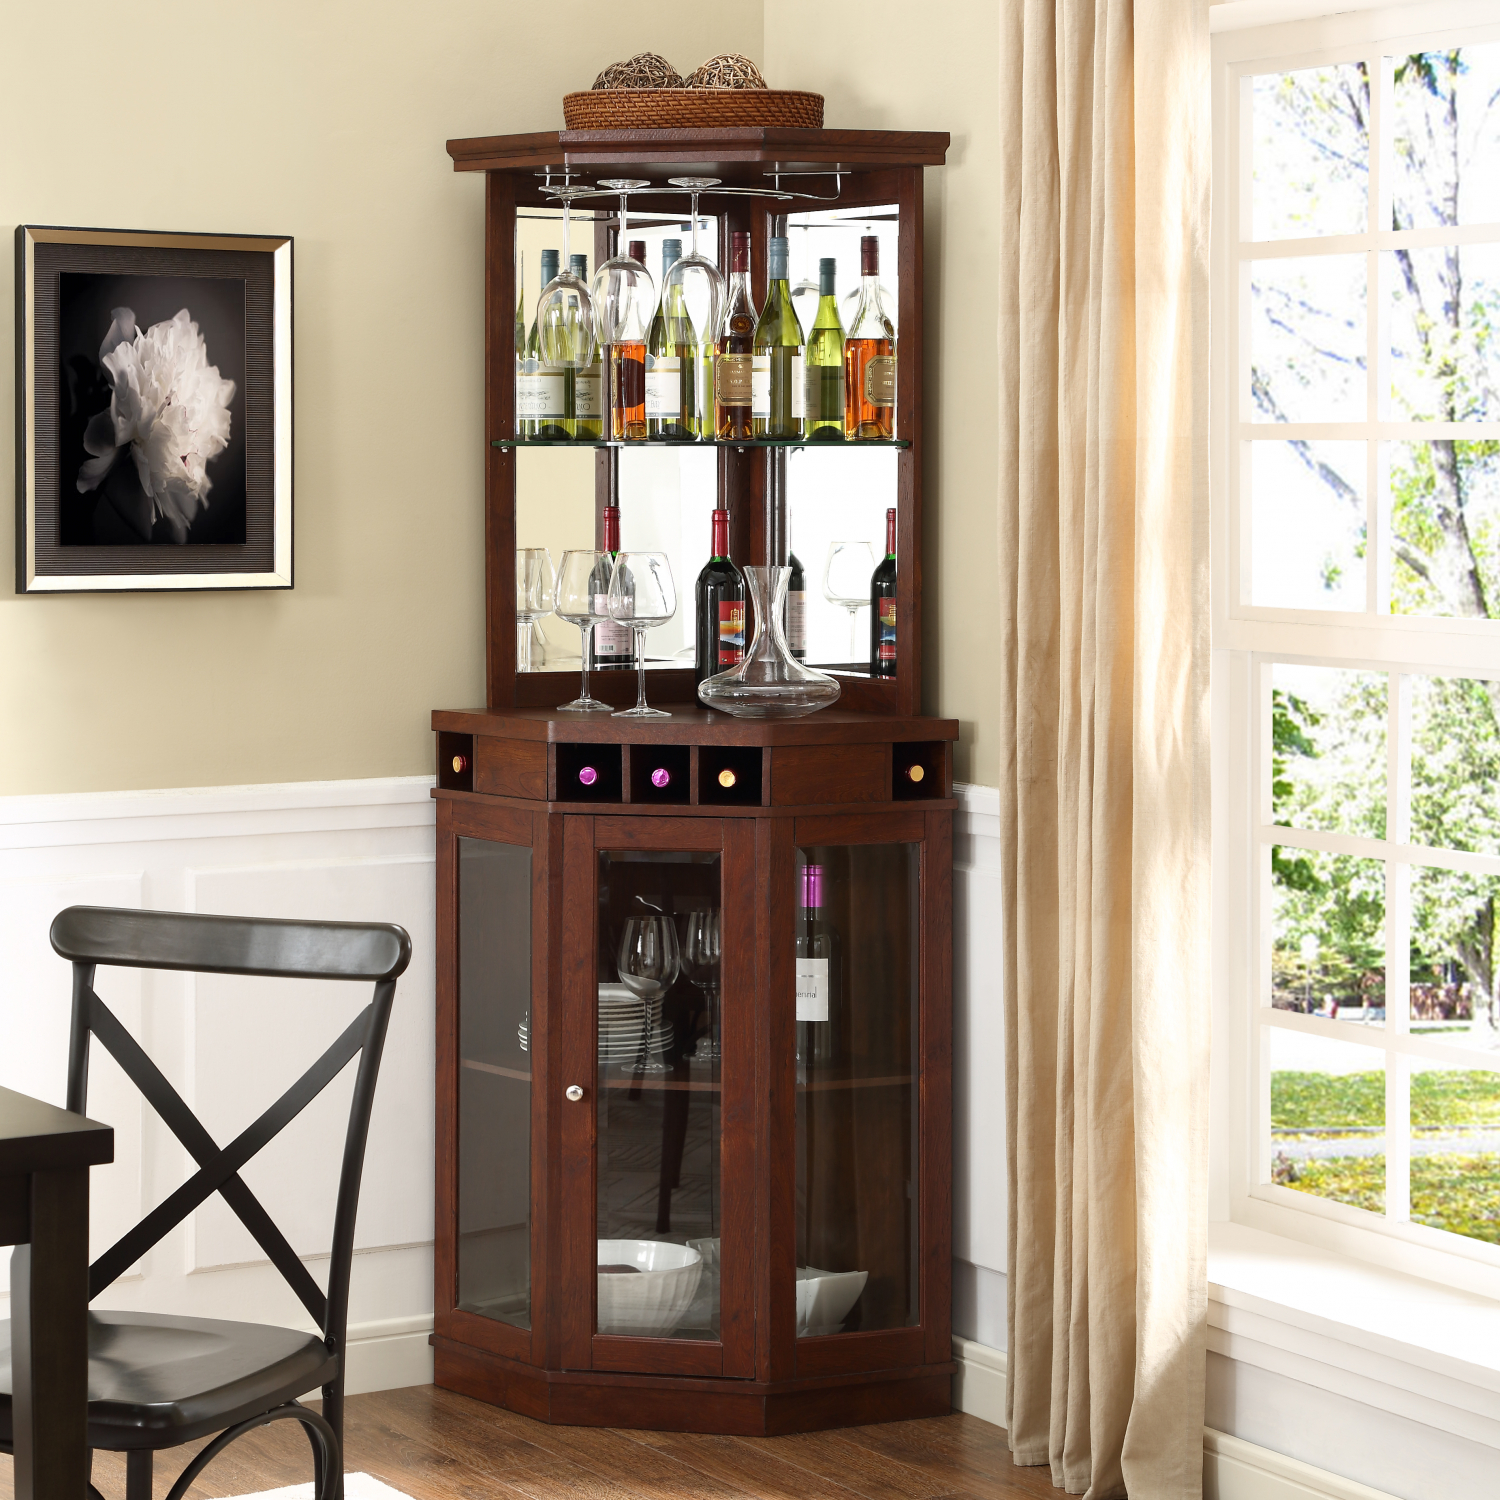 Details About Mini Bars Liquor Cabinet Whiskey Cabinets Wine Storage Wooden Home Bar Furniture in proportions 1500 X 1500